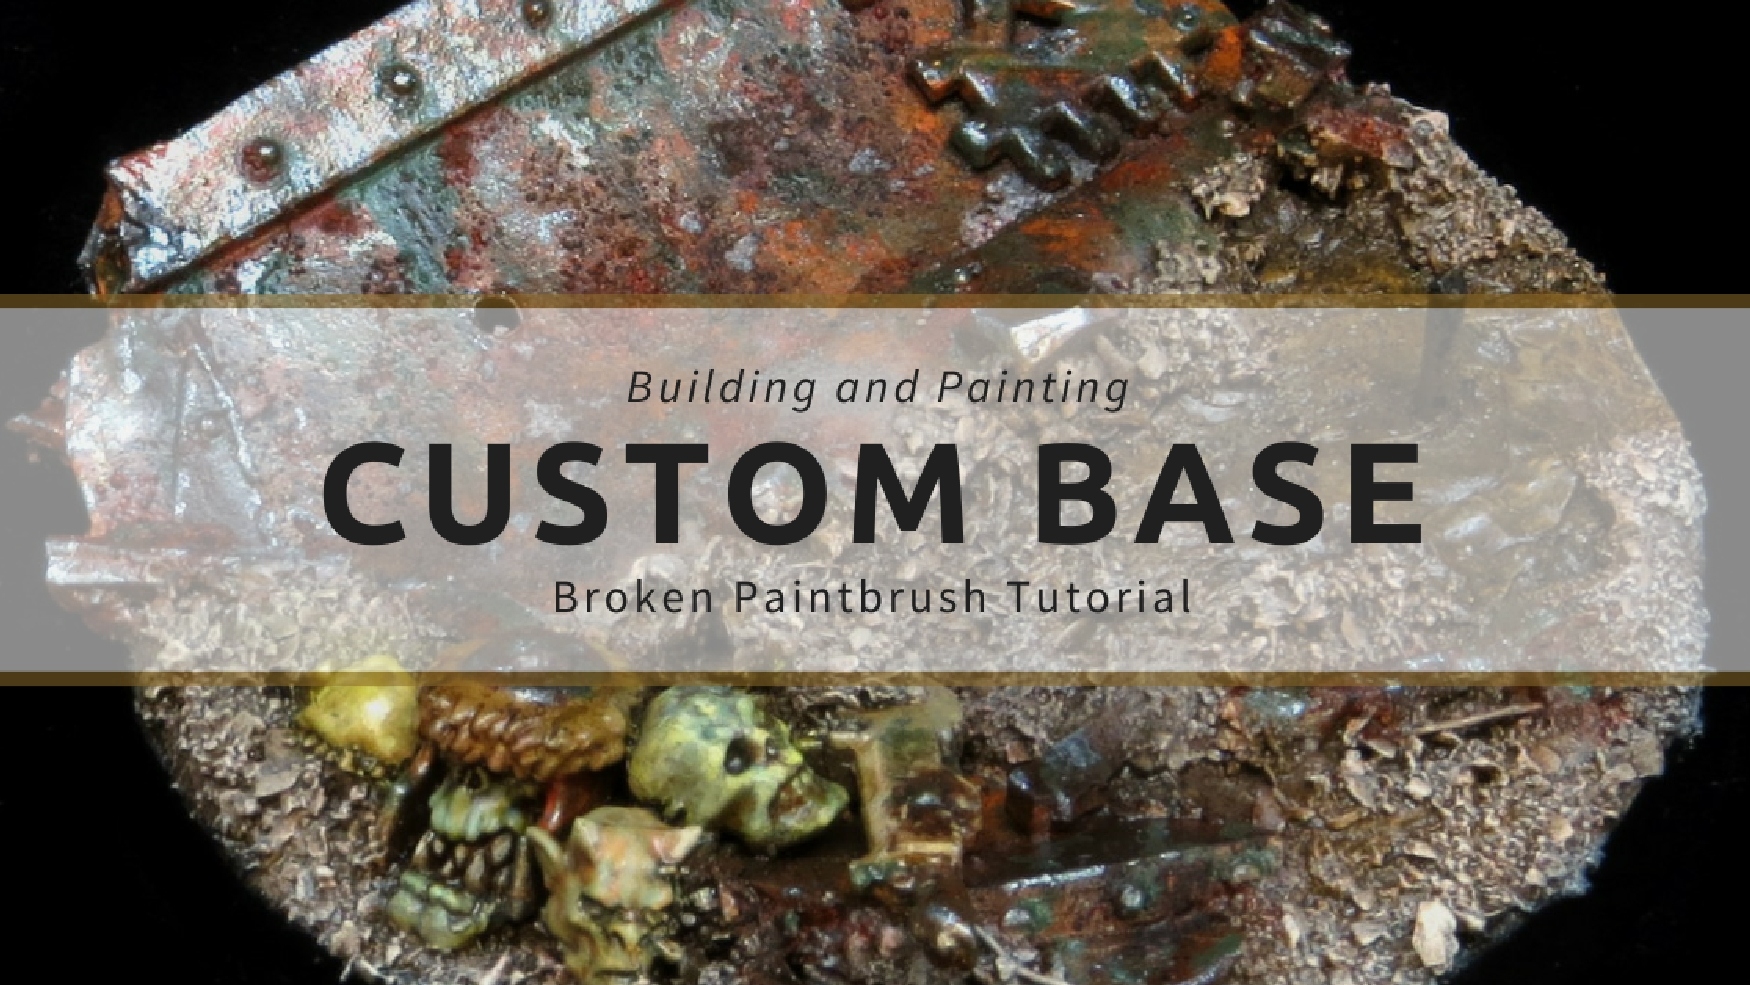 Build and Paint a Custom Base